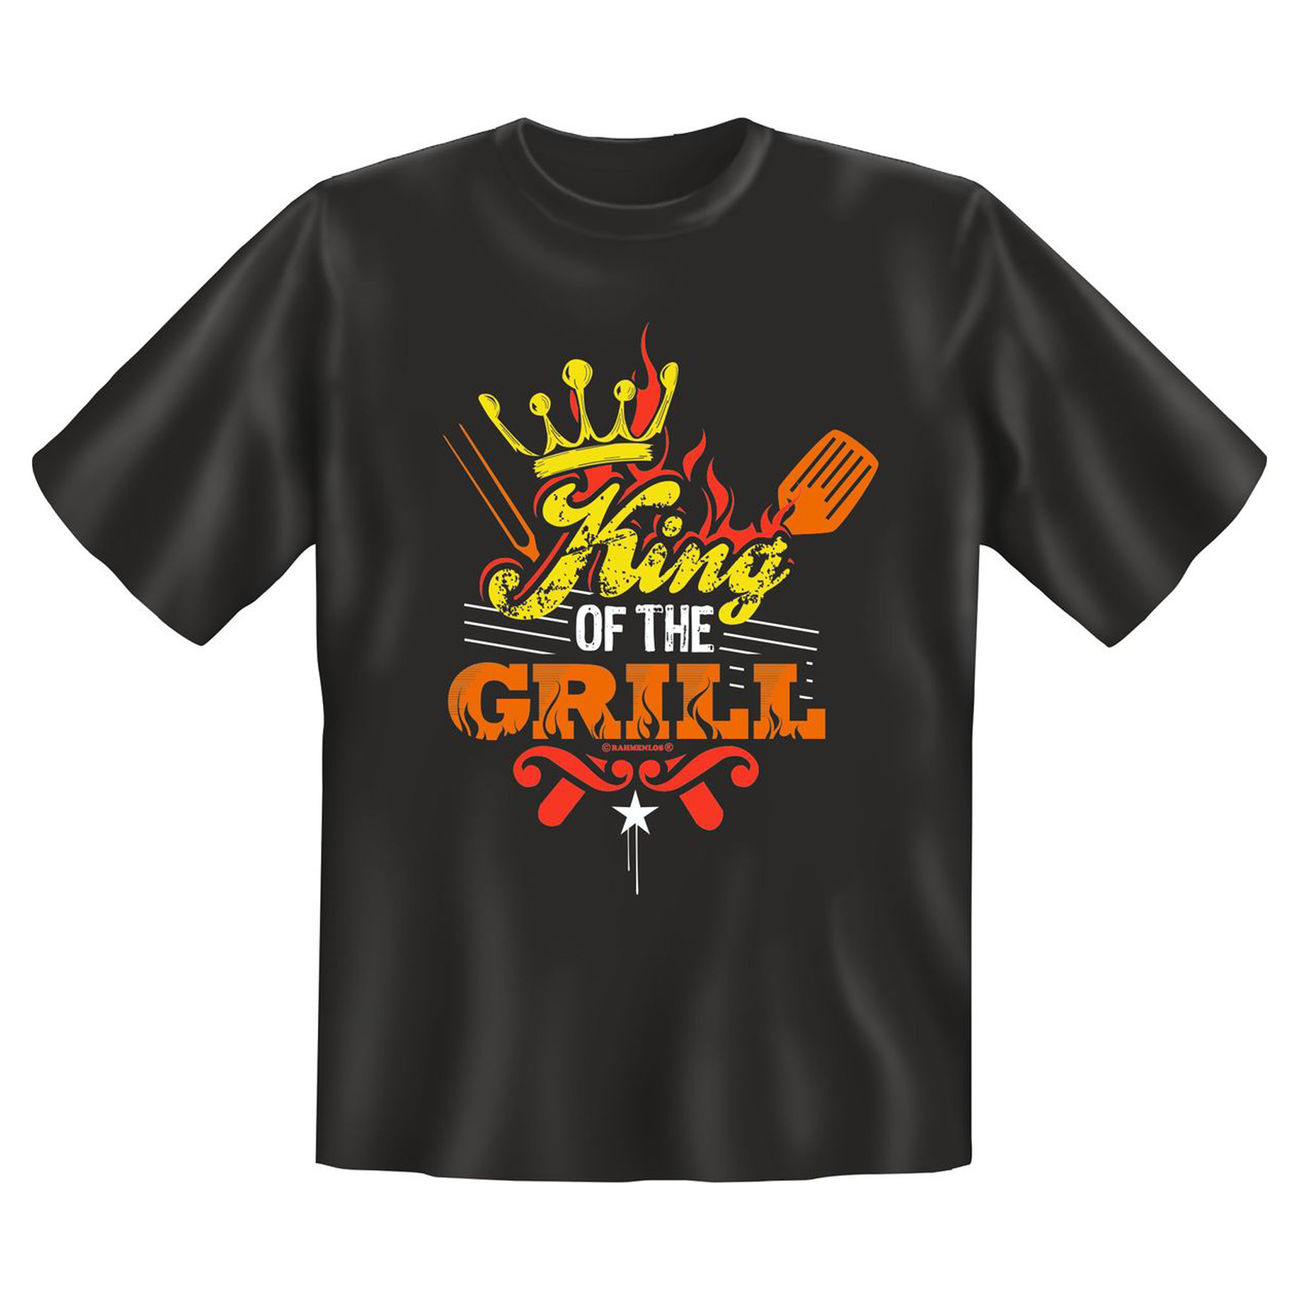 Rahmenlos T-Shirt King of the Grill 0